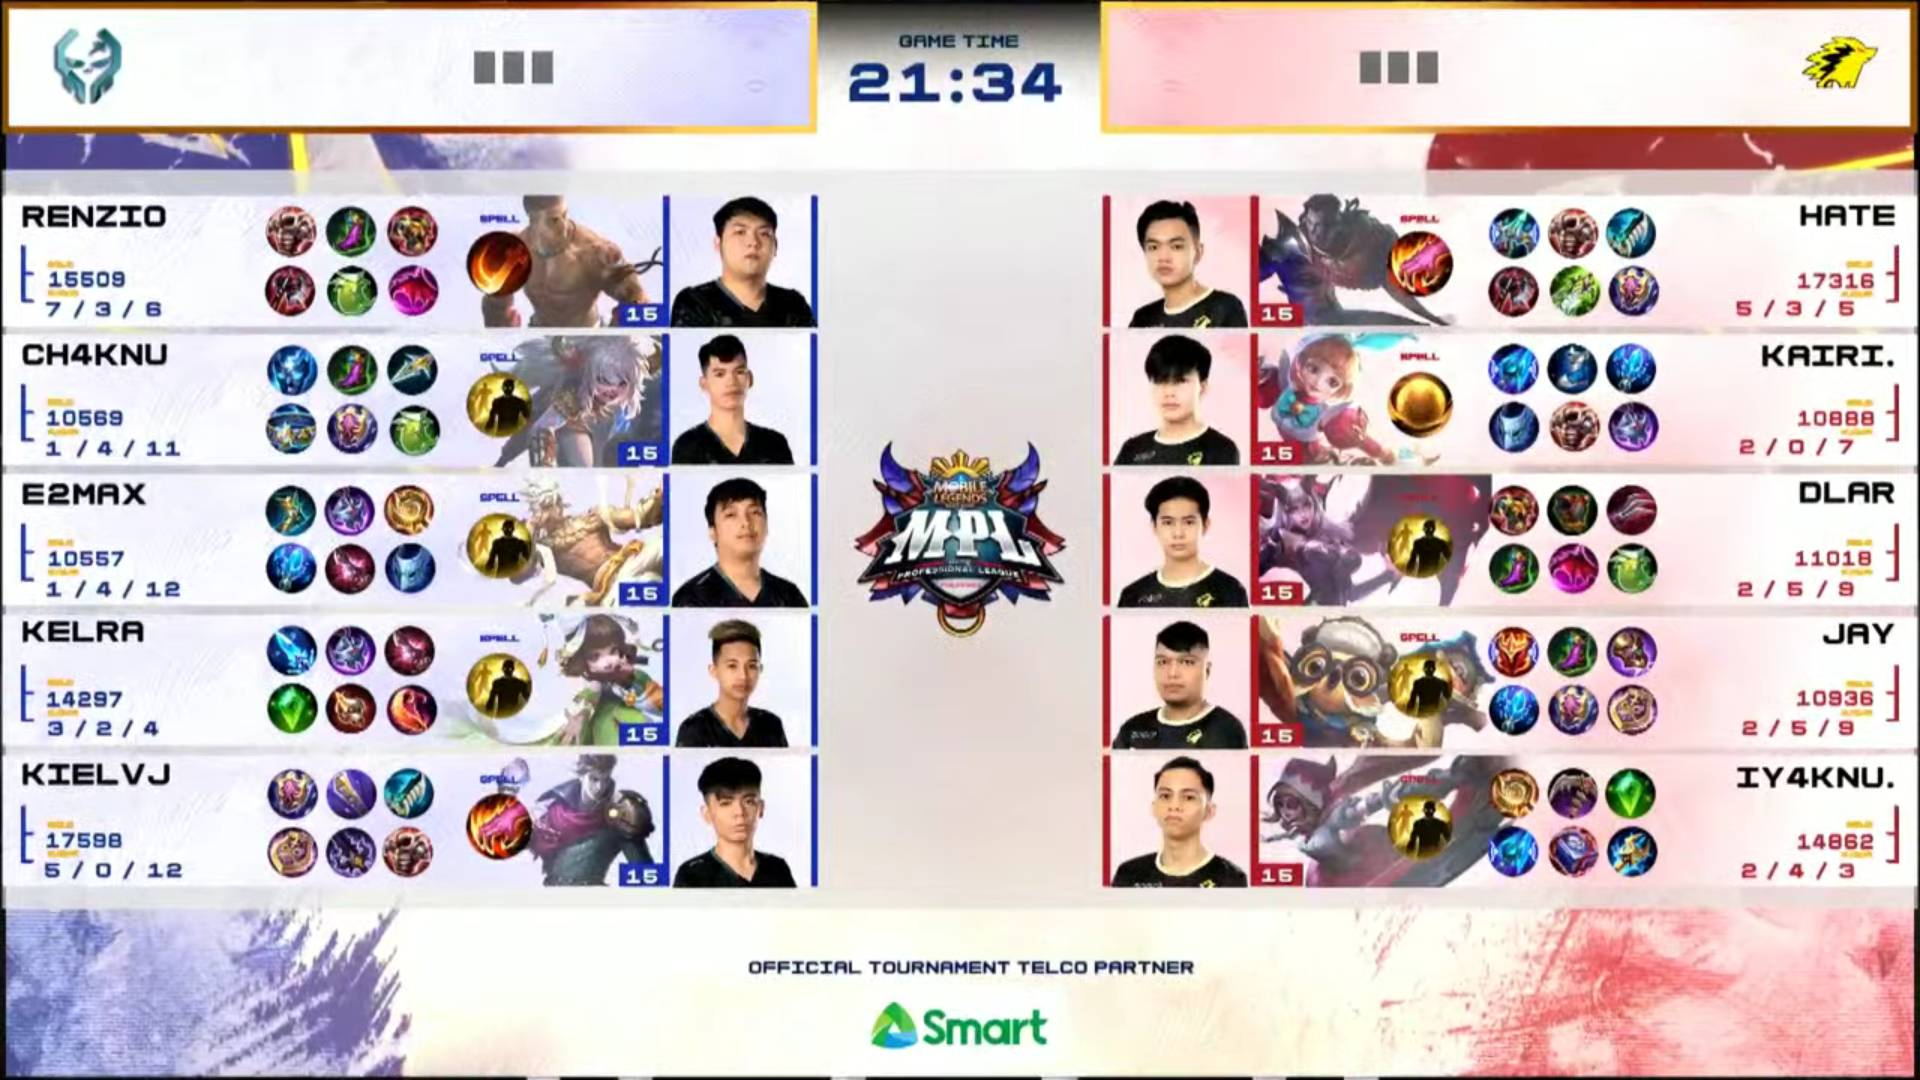 MPL-PH-Season-7-Execration-def-Onic-Game-1 Execration eliminates Hate, ONIC PH in MPL PH playoffs ESports Mobile Legends MPL-PH News  - philippine sports news